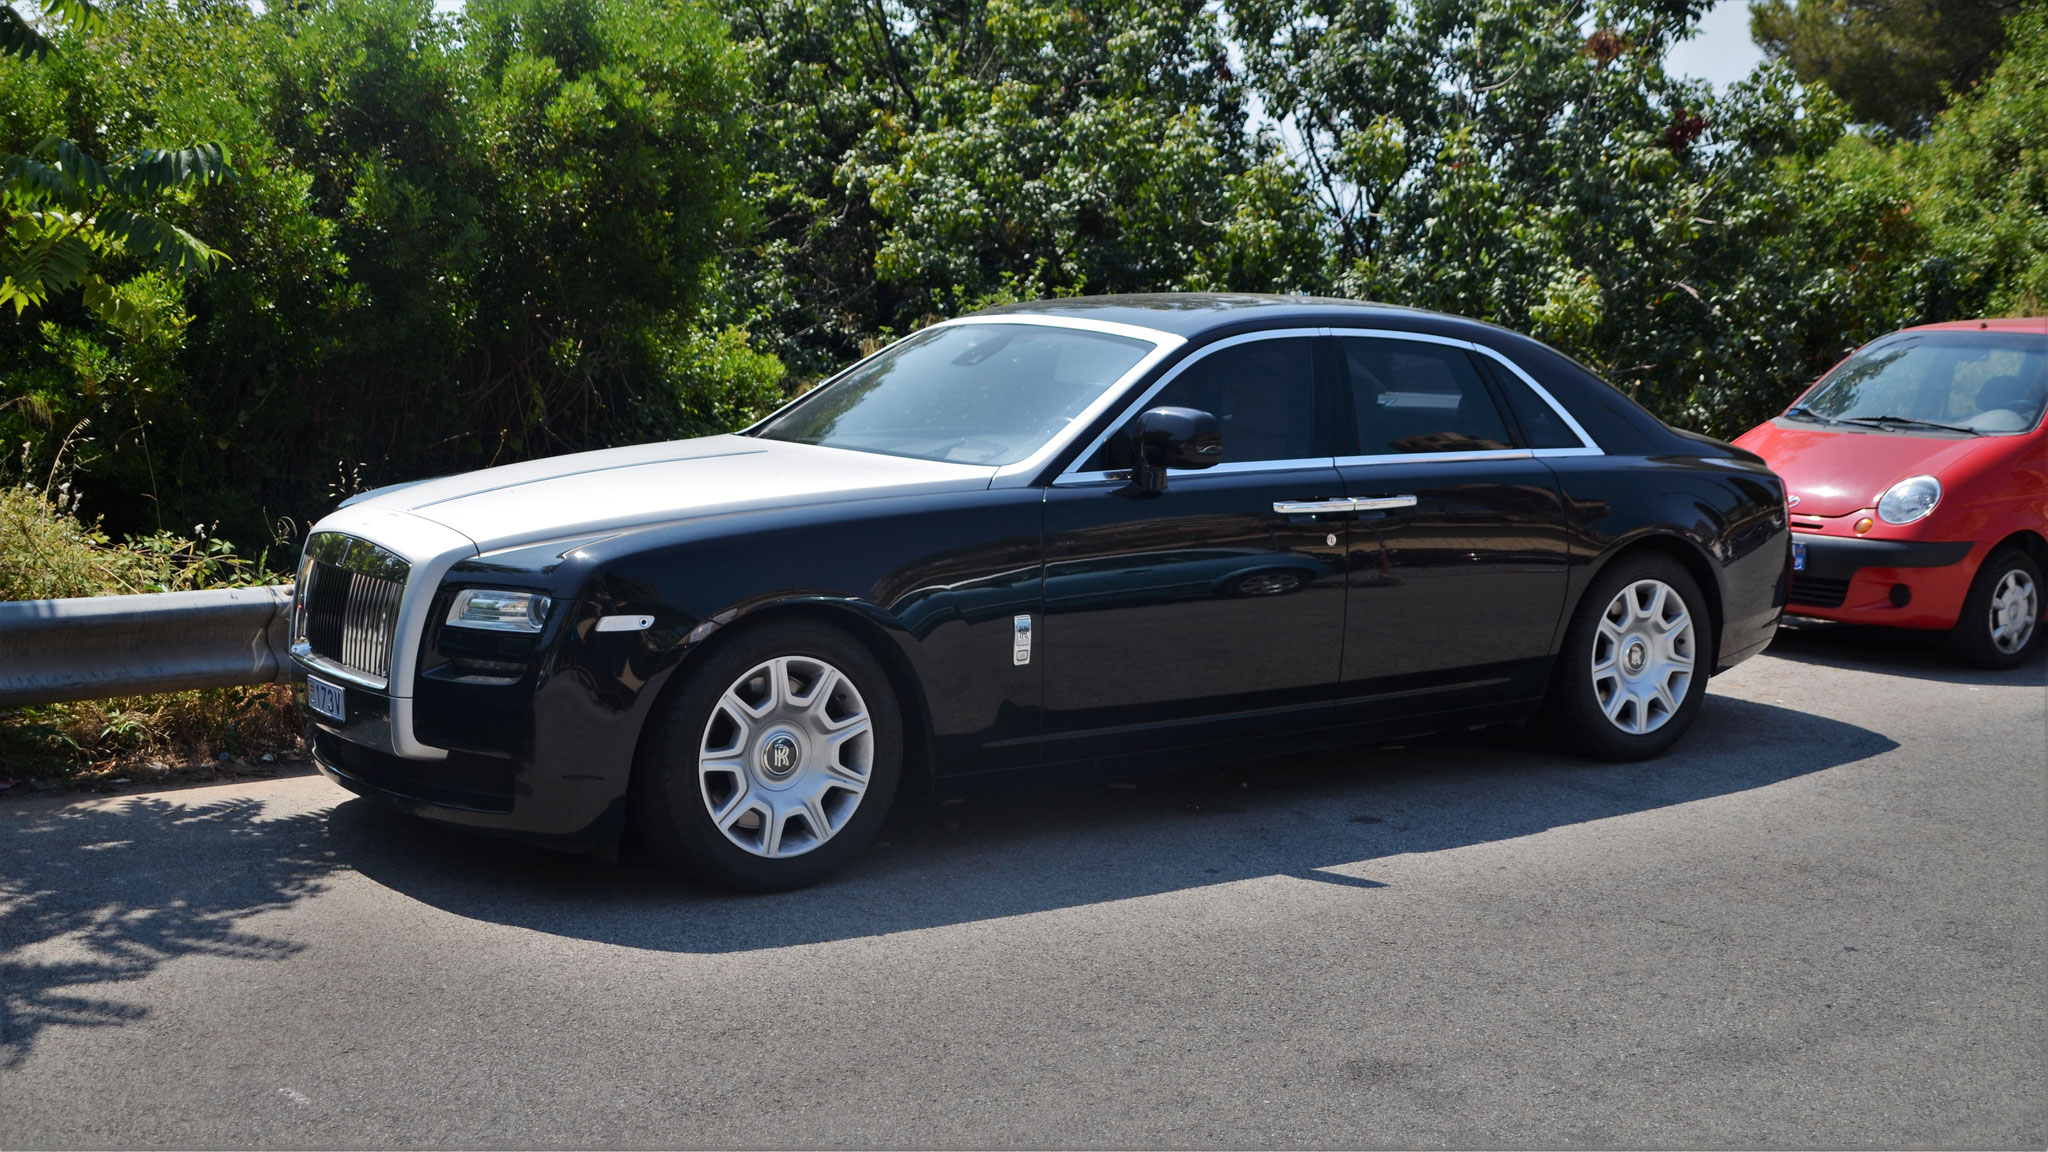 Rolls Royce Ghost - 173V (MC)